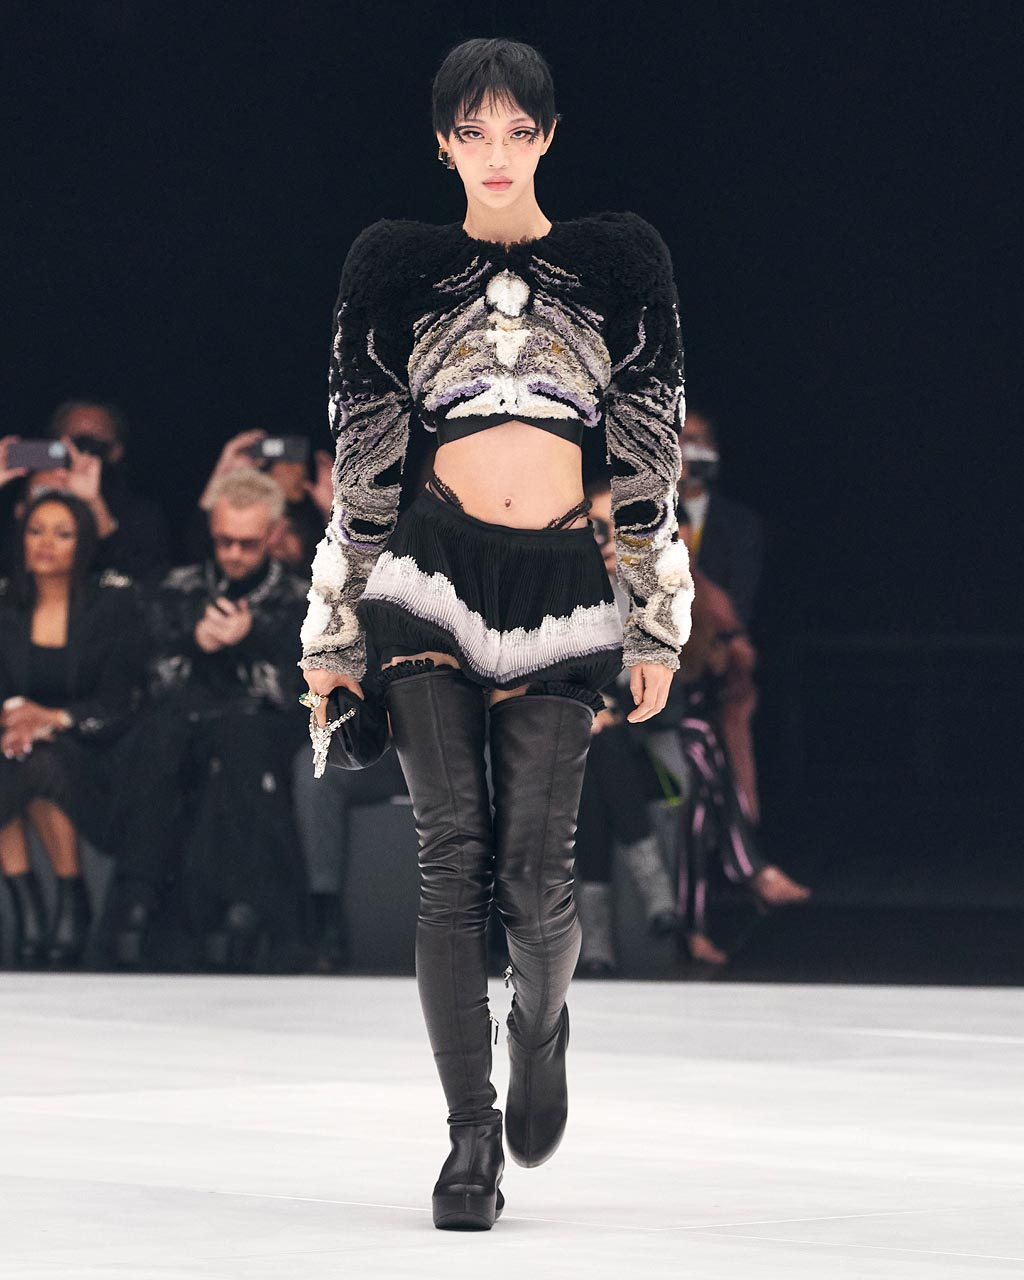 Spring Summer 2022 collection Look 11